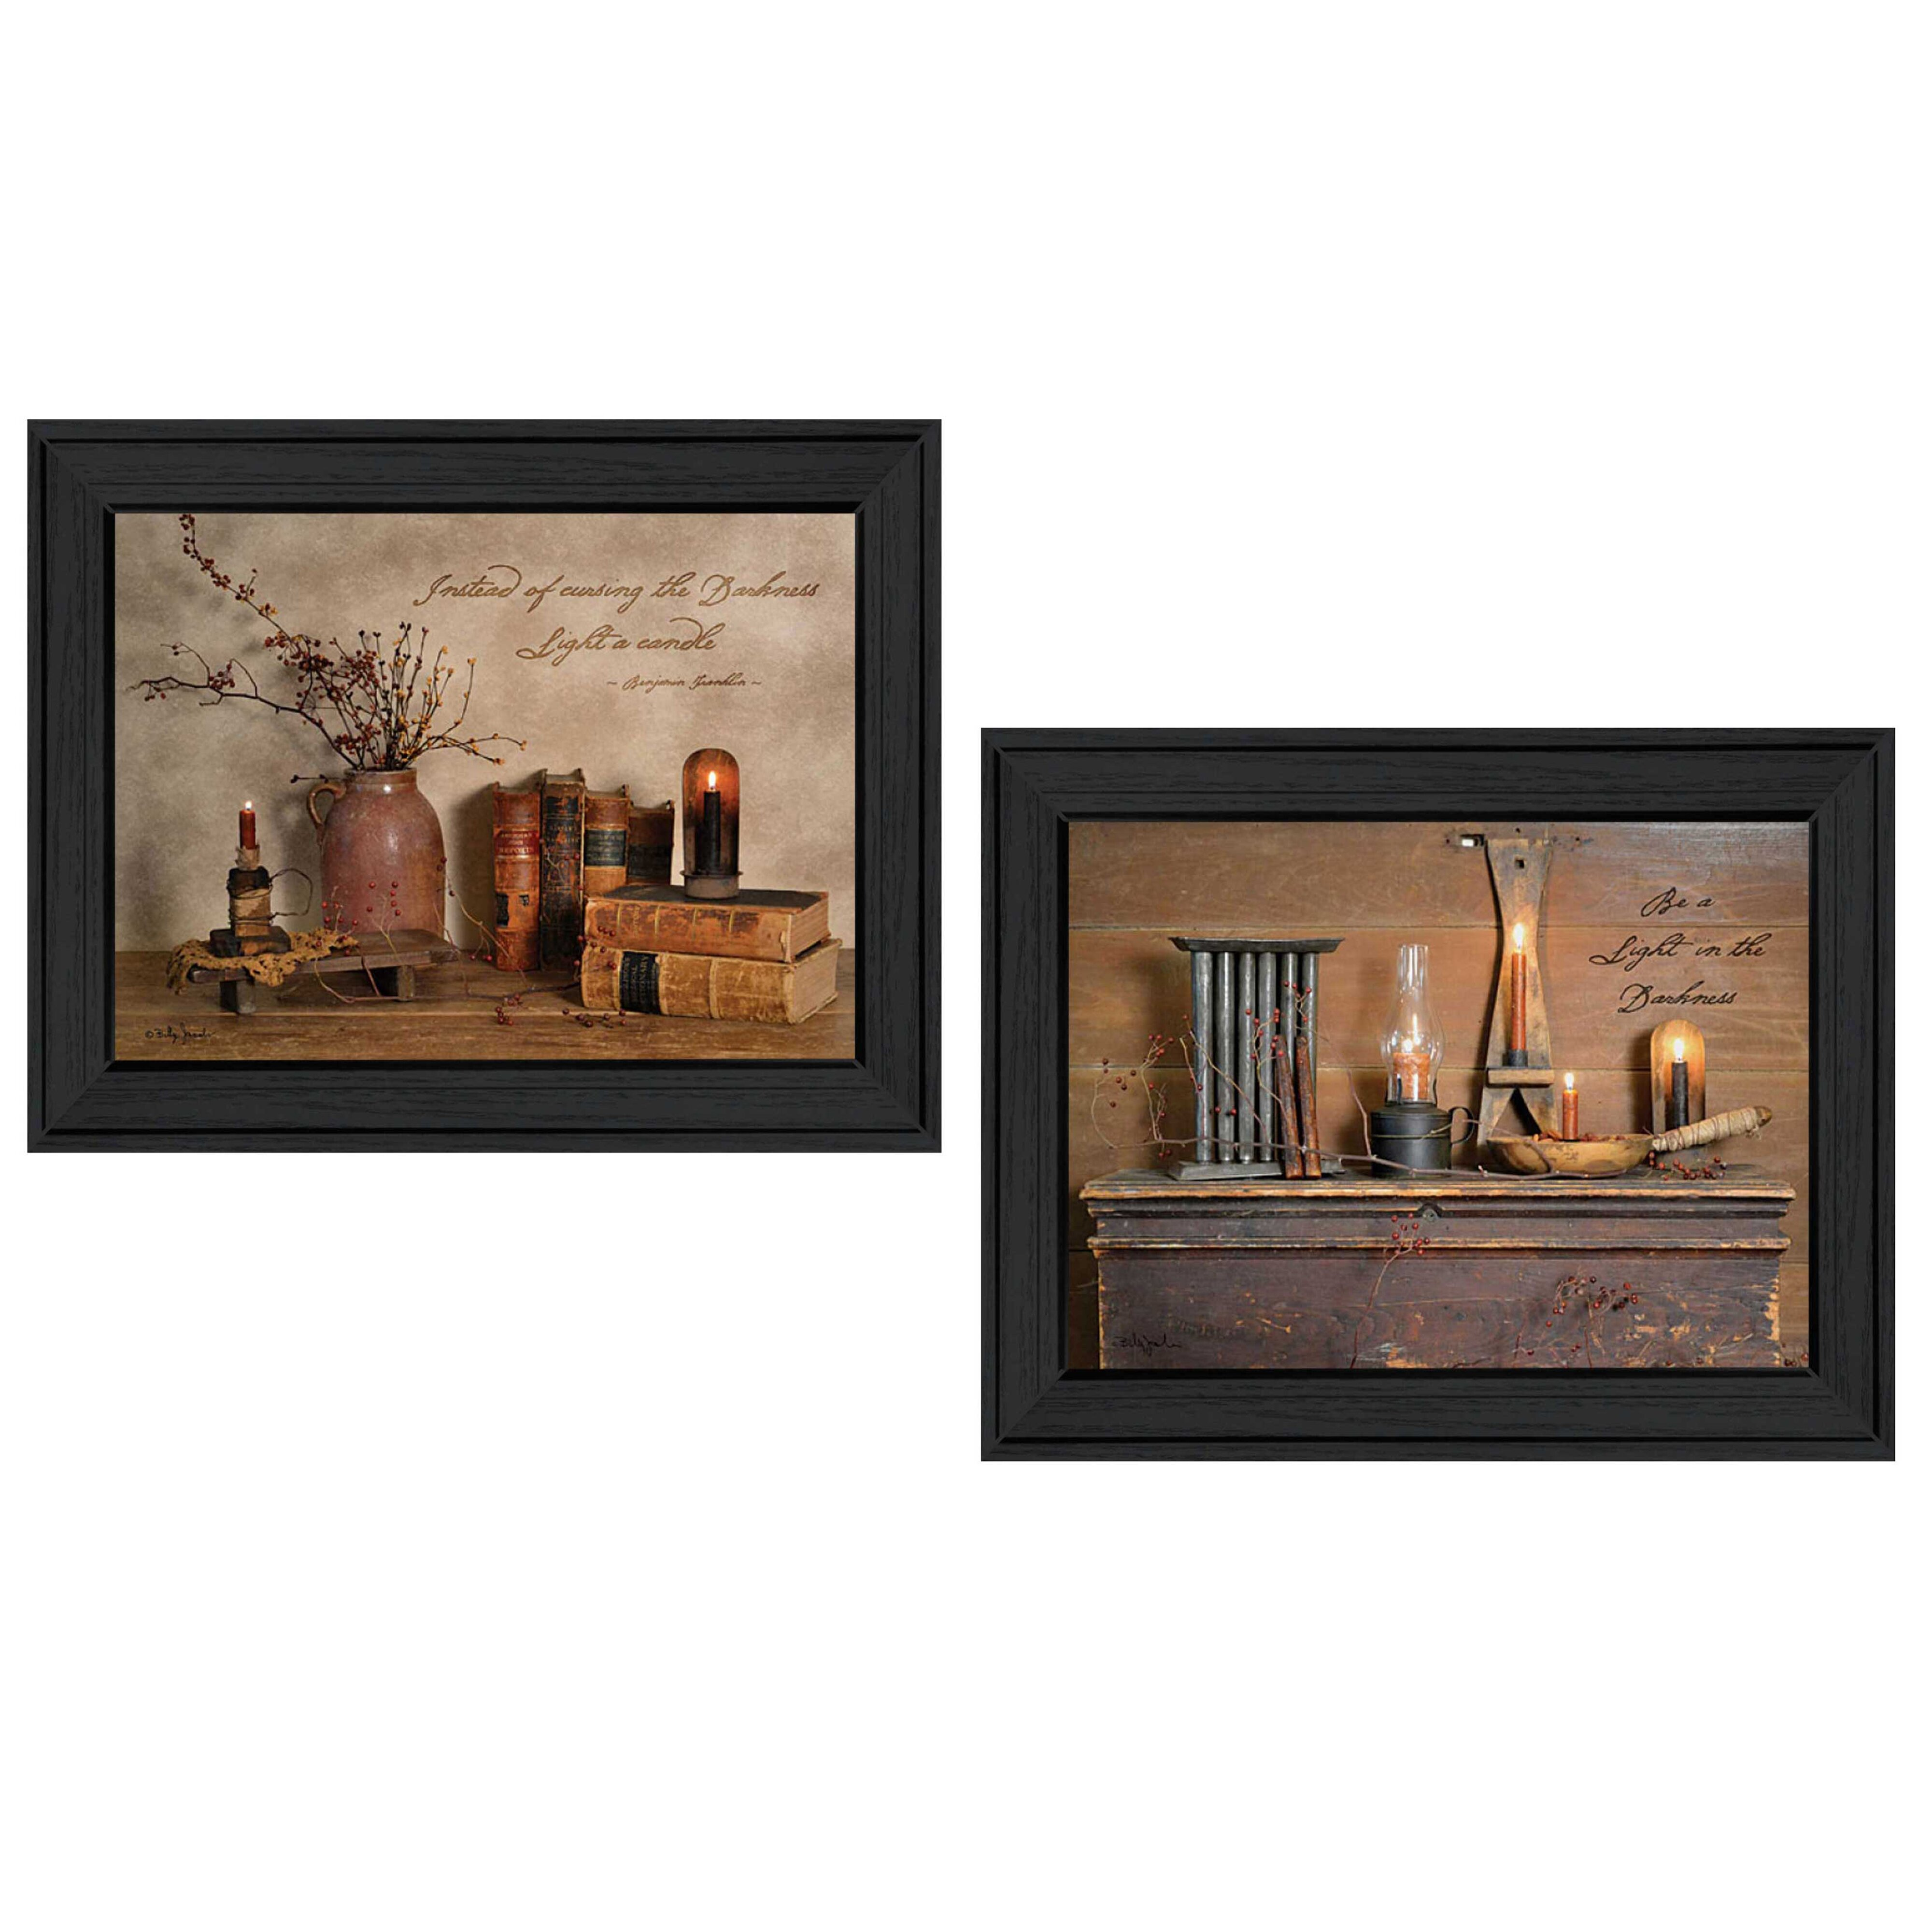 Trendy decor 4u 39 candles 39 by billy jacobs 2 piece framed for Room decor 4u